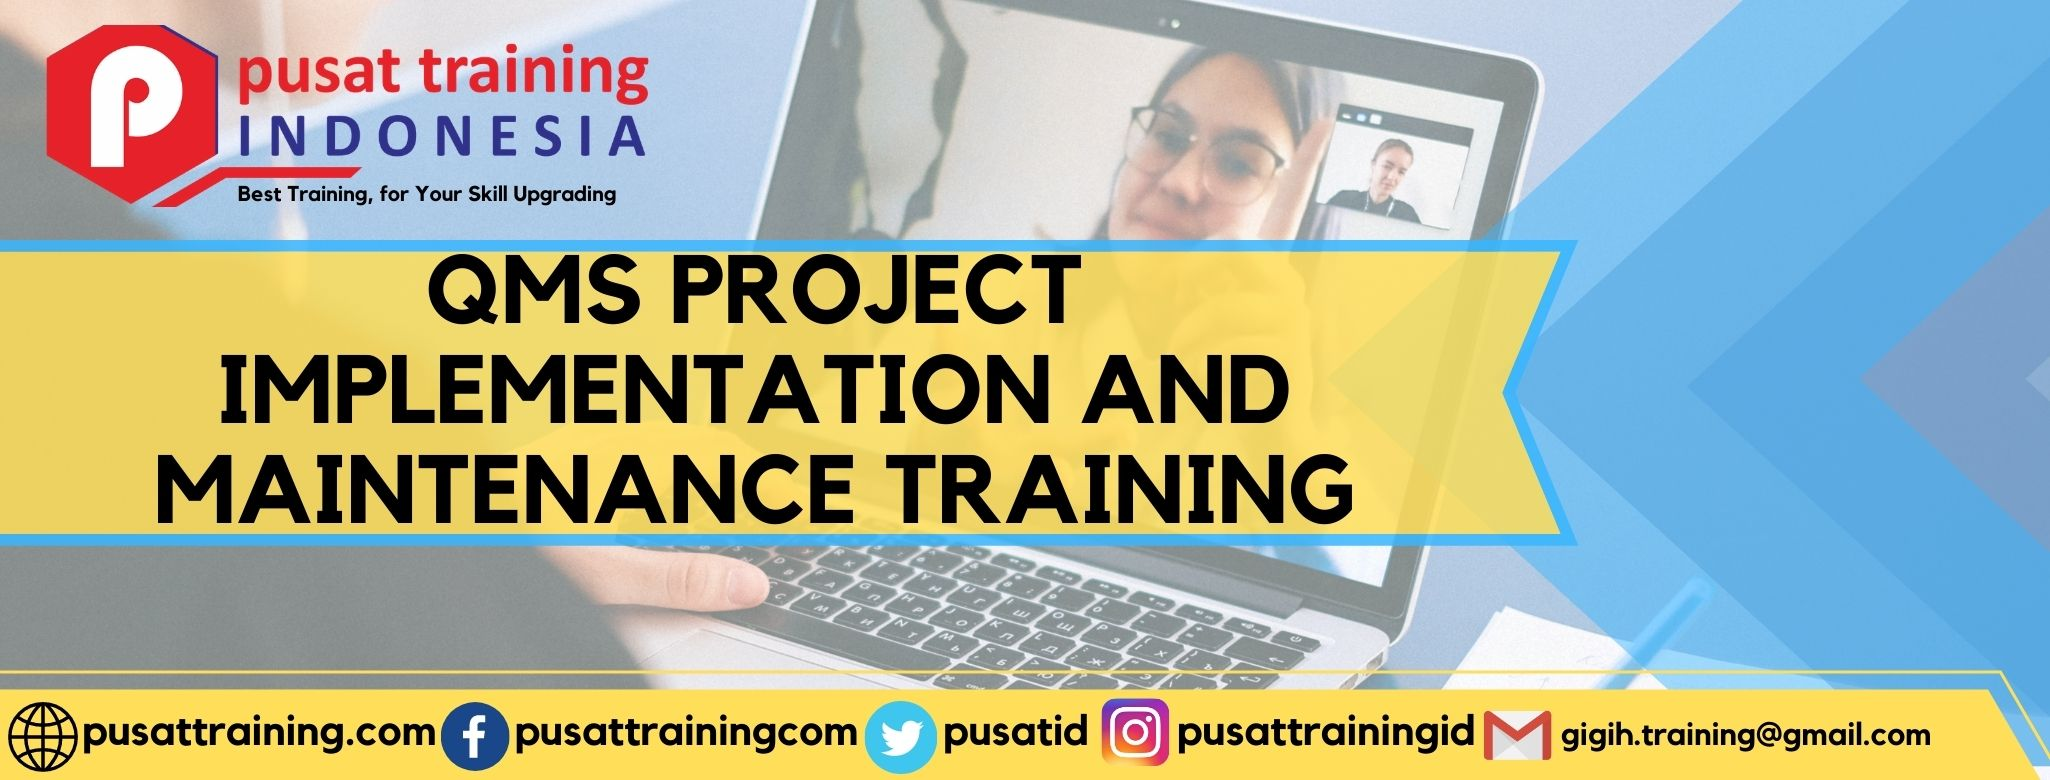 QMS PROJECT IMPLEMENTATION AND MAINTENANCE TRAINING